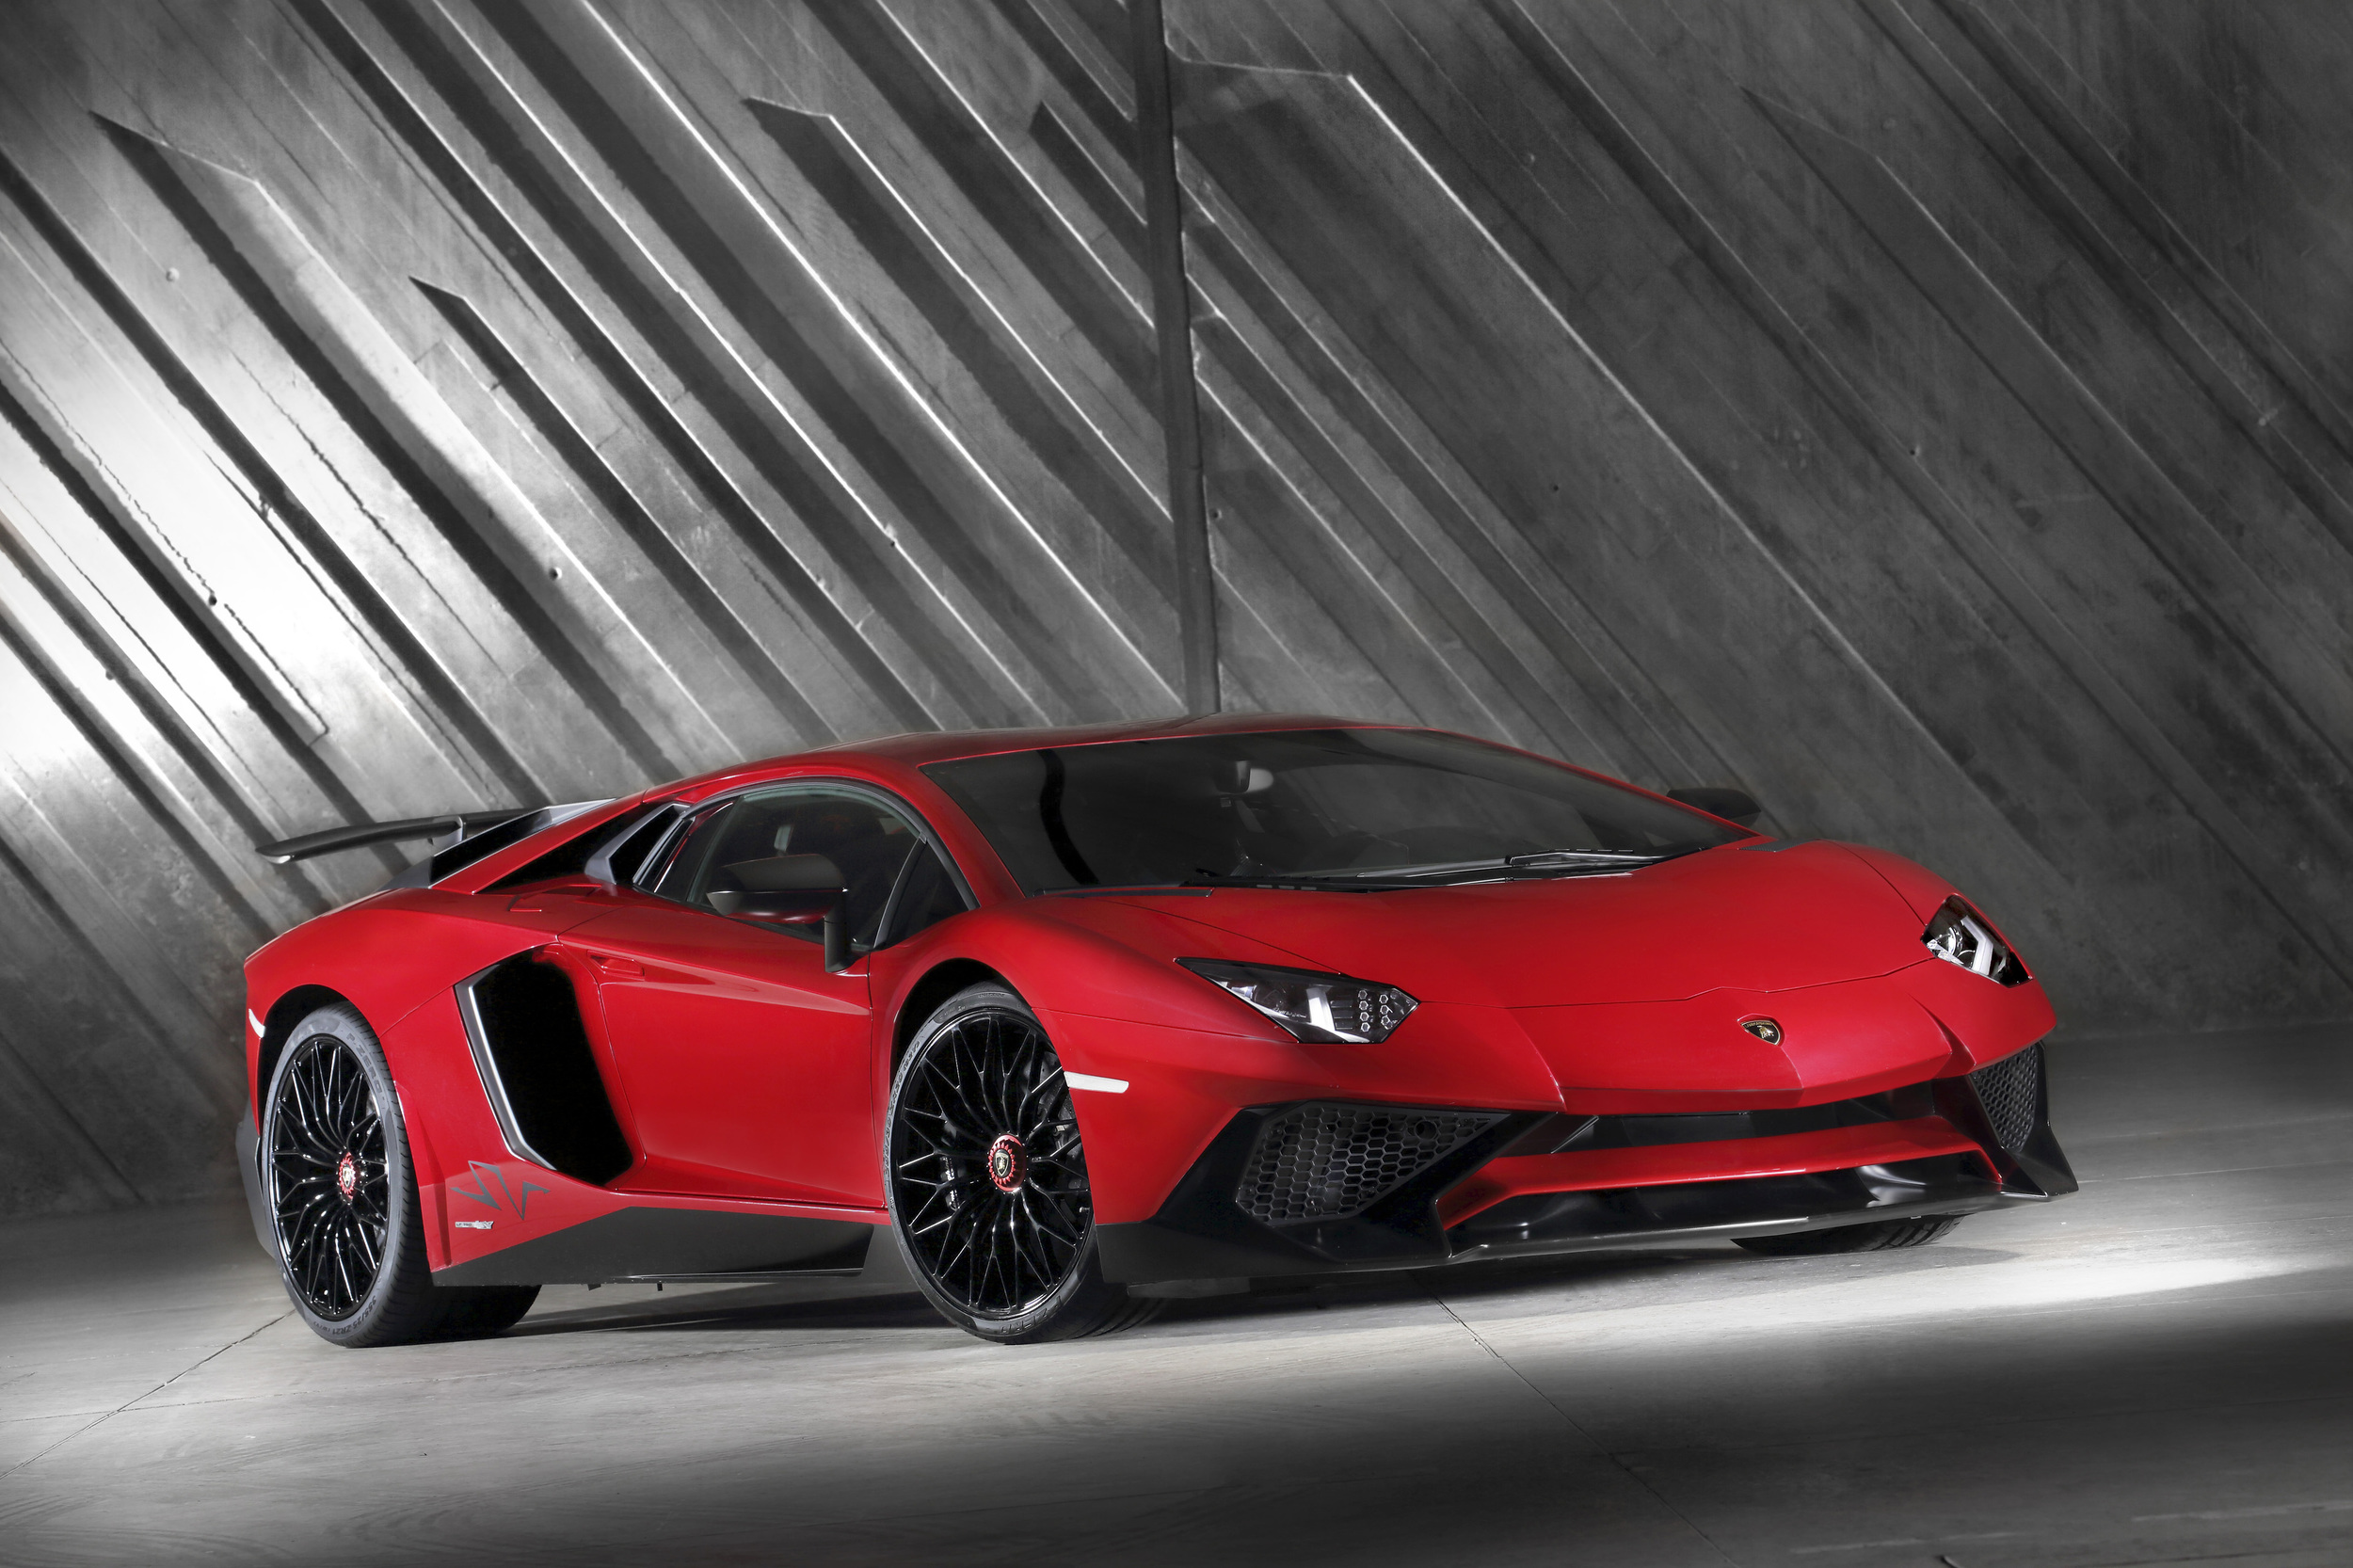 lamborghini aventador photo galleries - autoblog